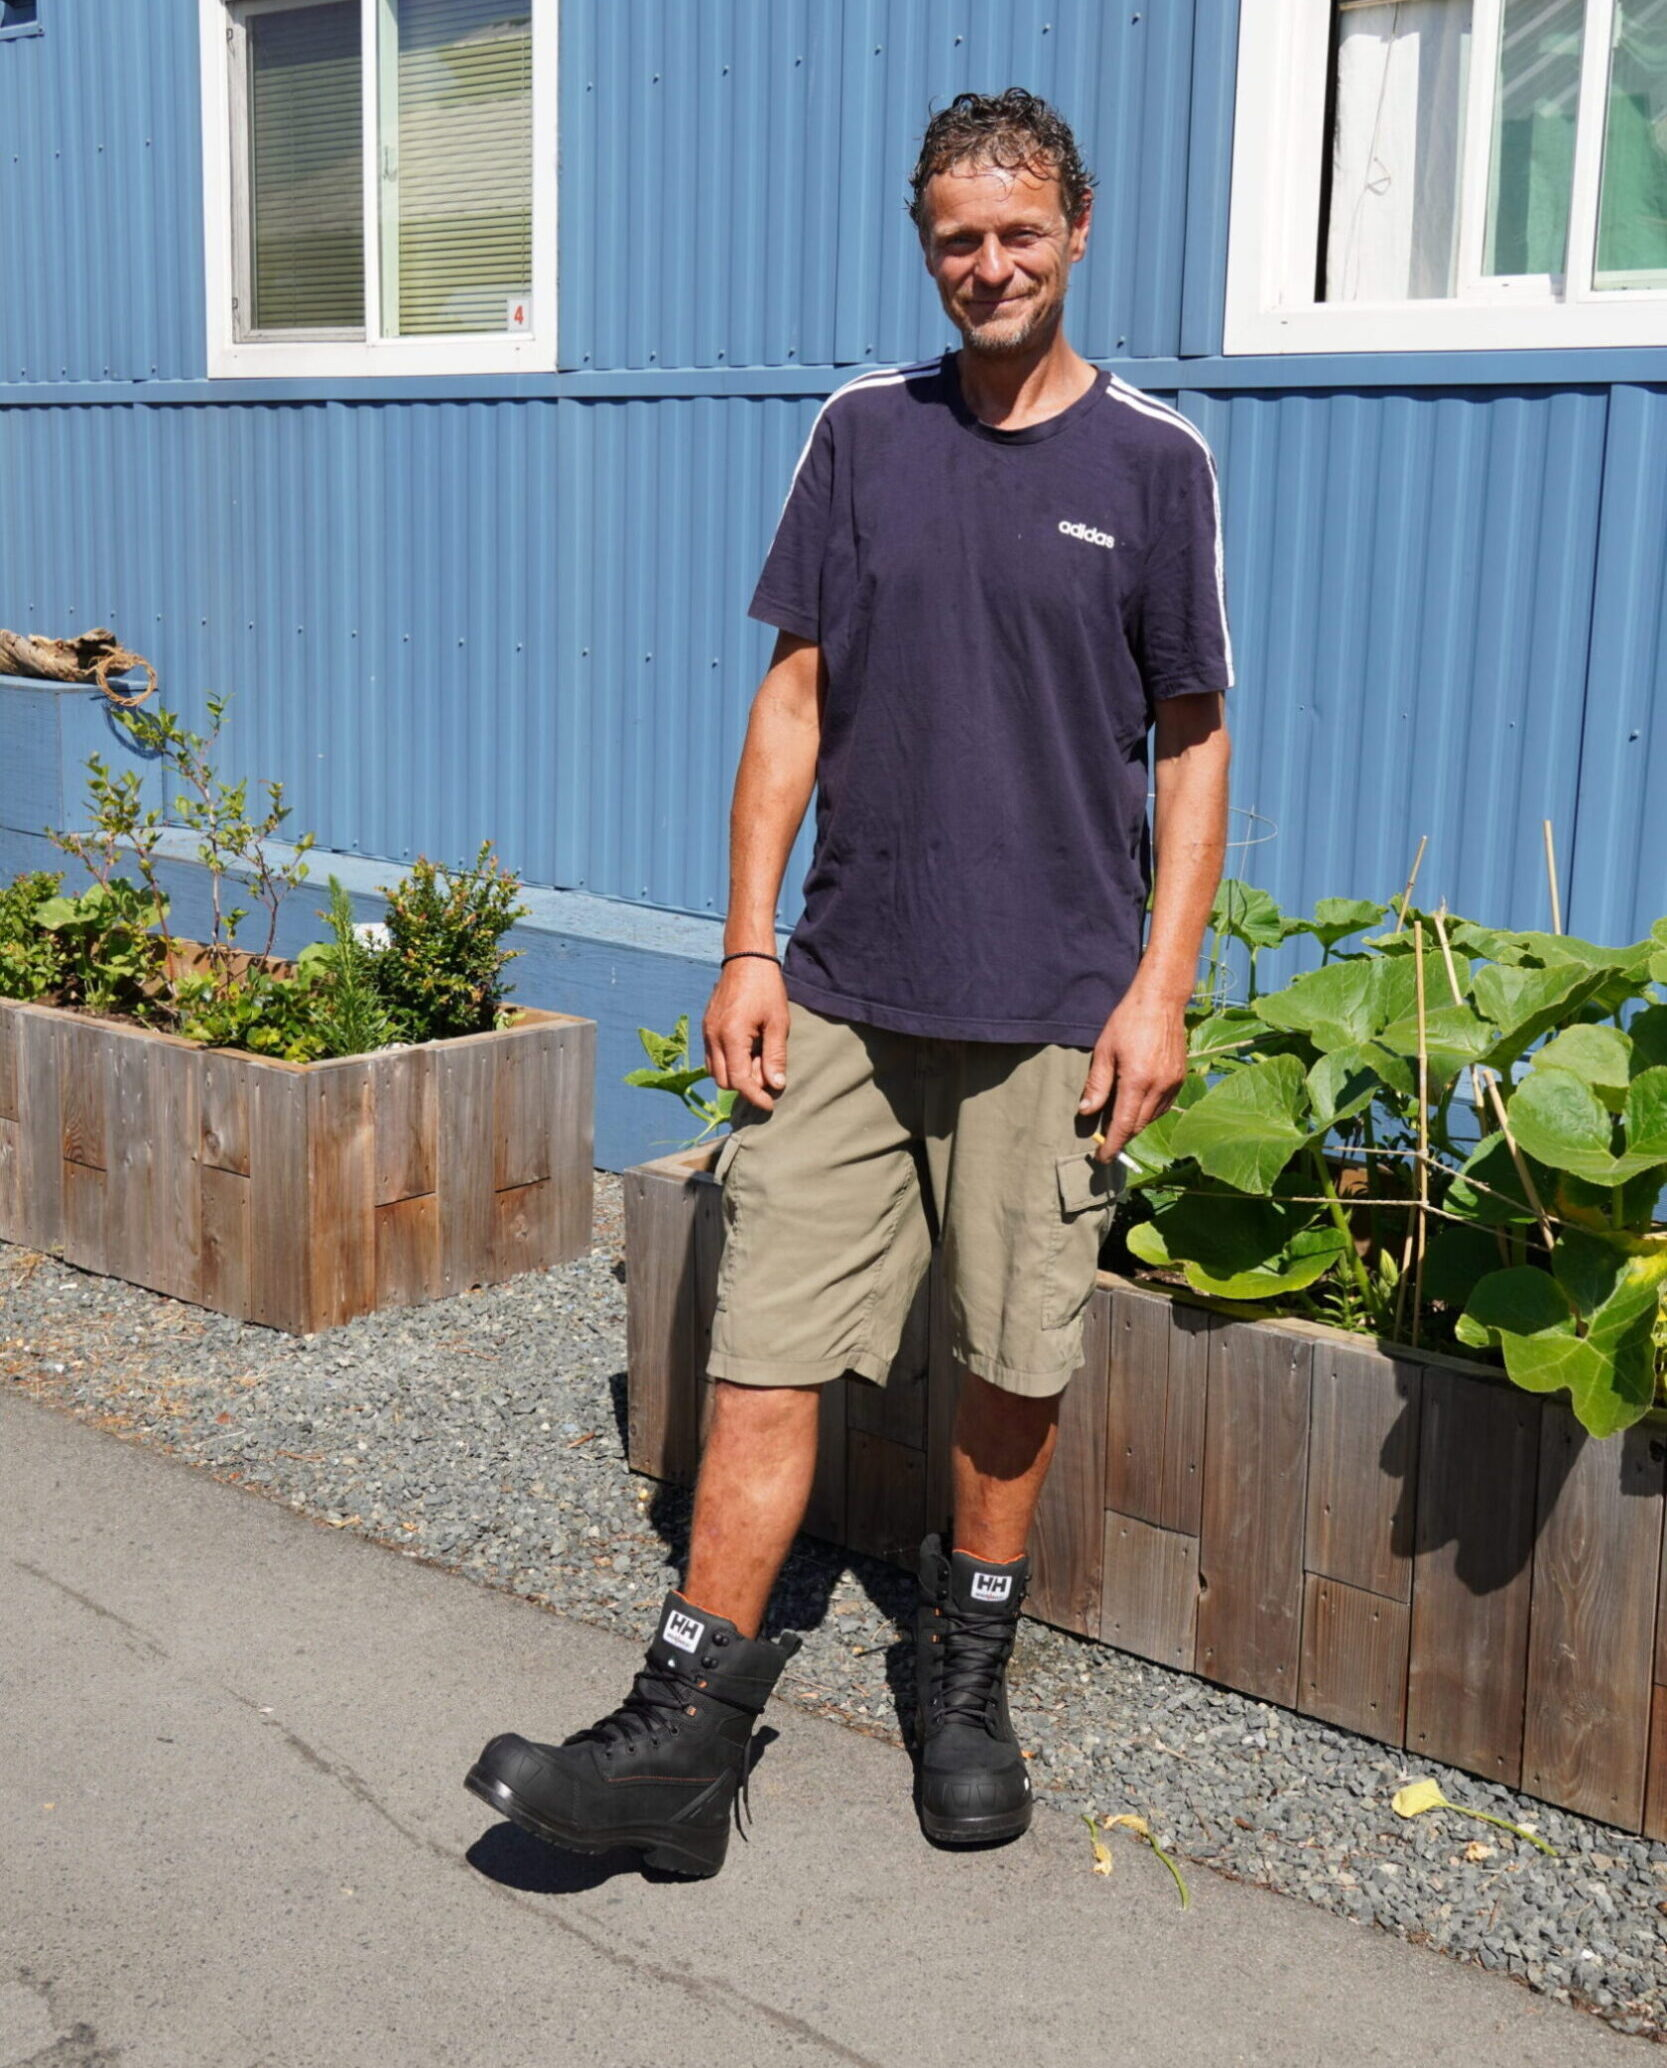 Jay in his new work boots.